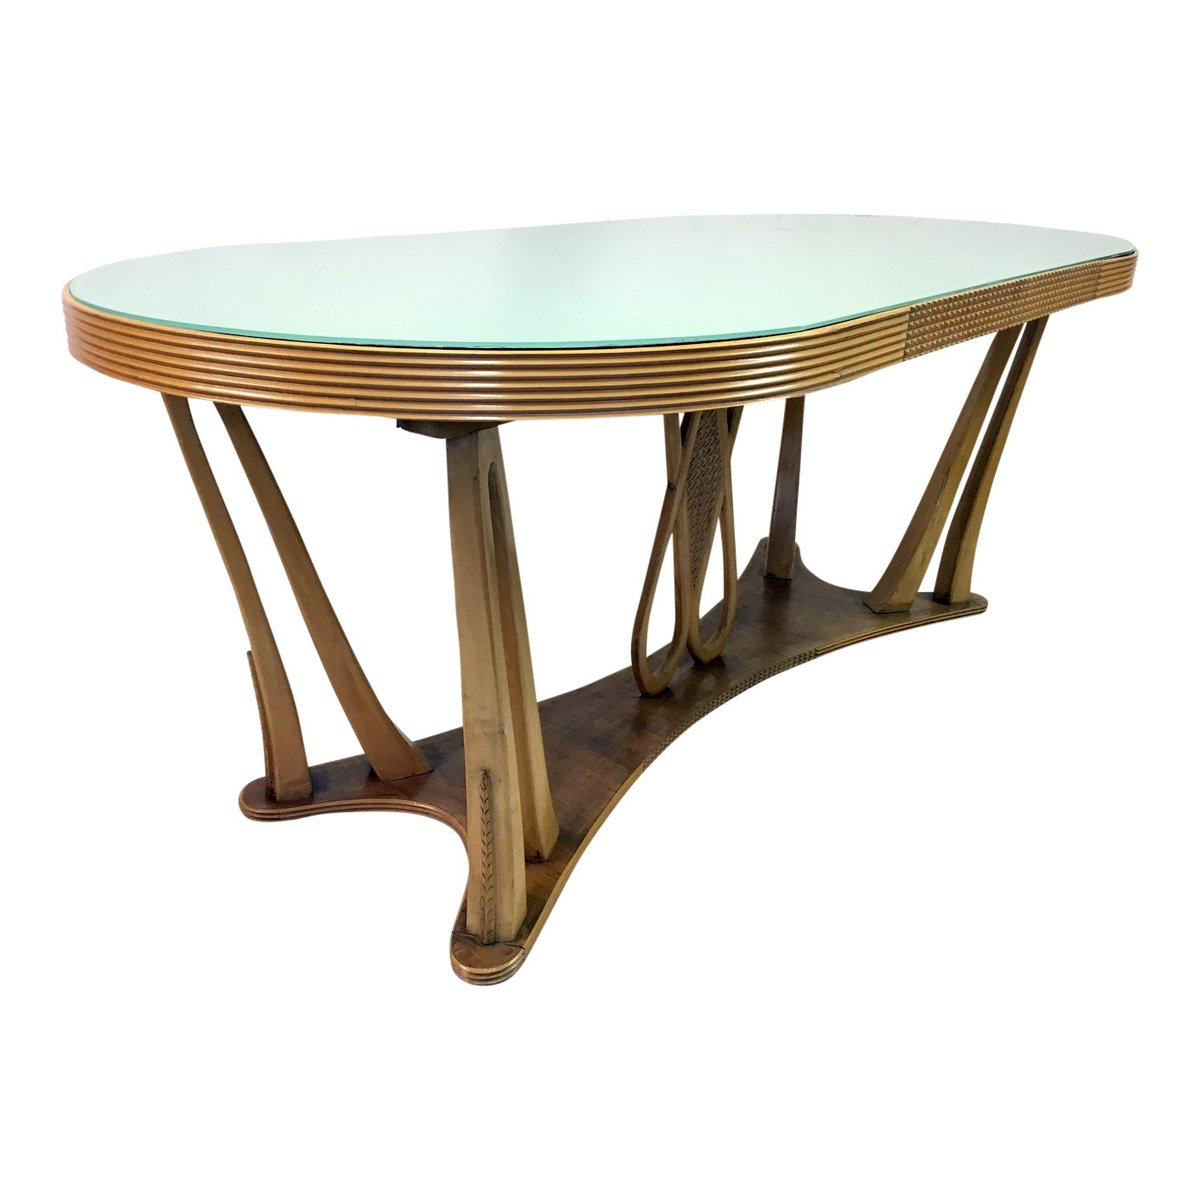 Vintage italian dining table with glass top 1940s for sale at pamono reviewsmspy